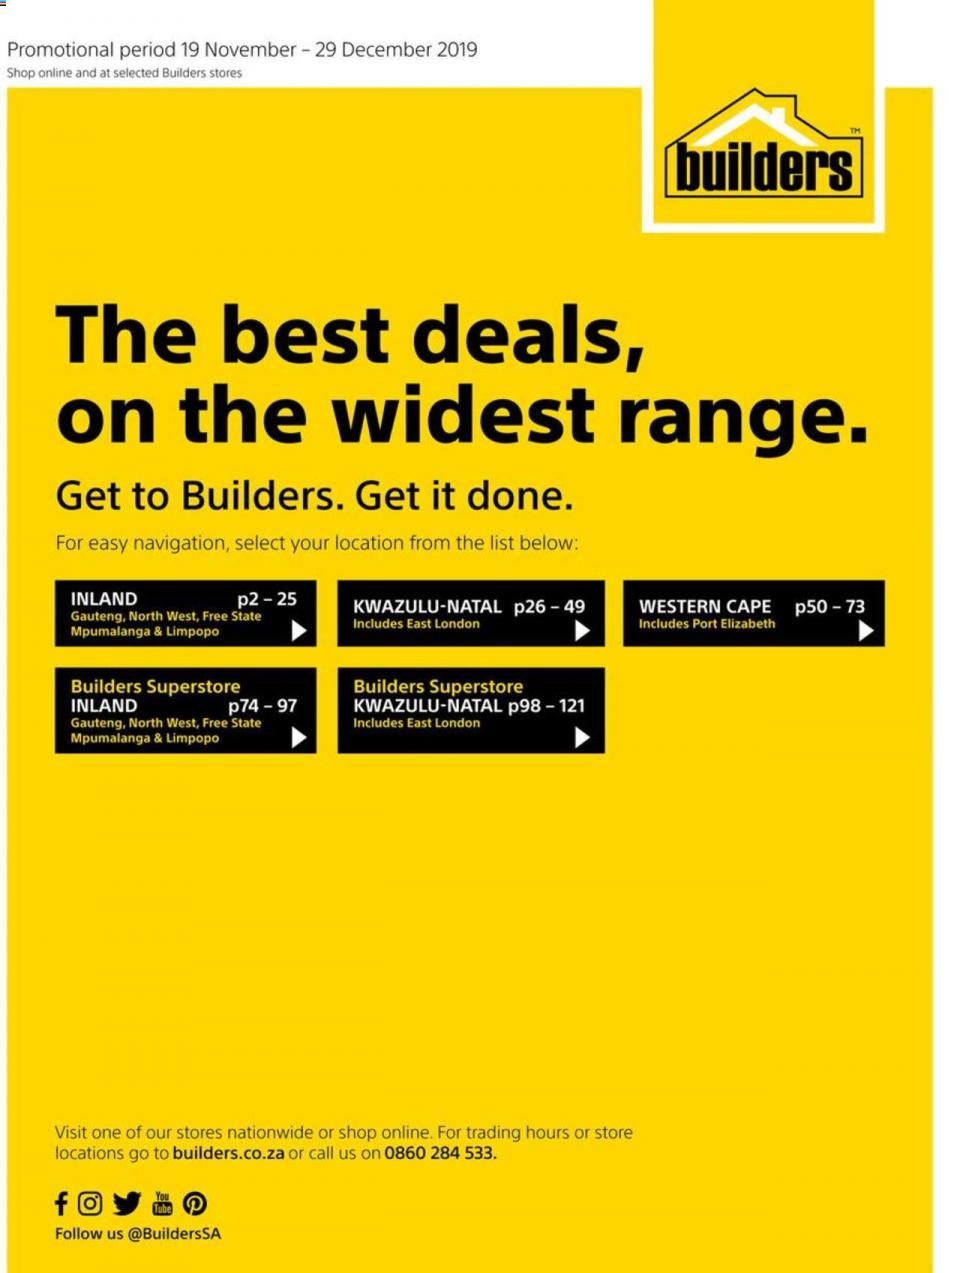 builders warehouse specials the best deals on the widest range 20 november 2019